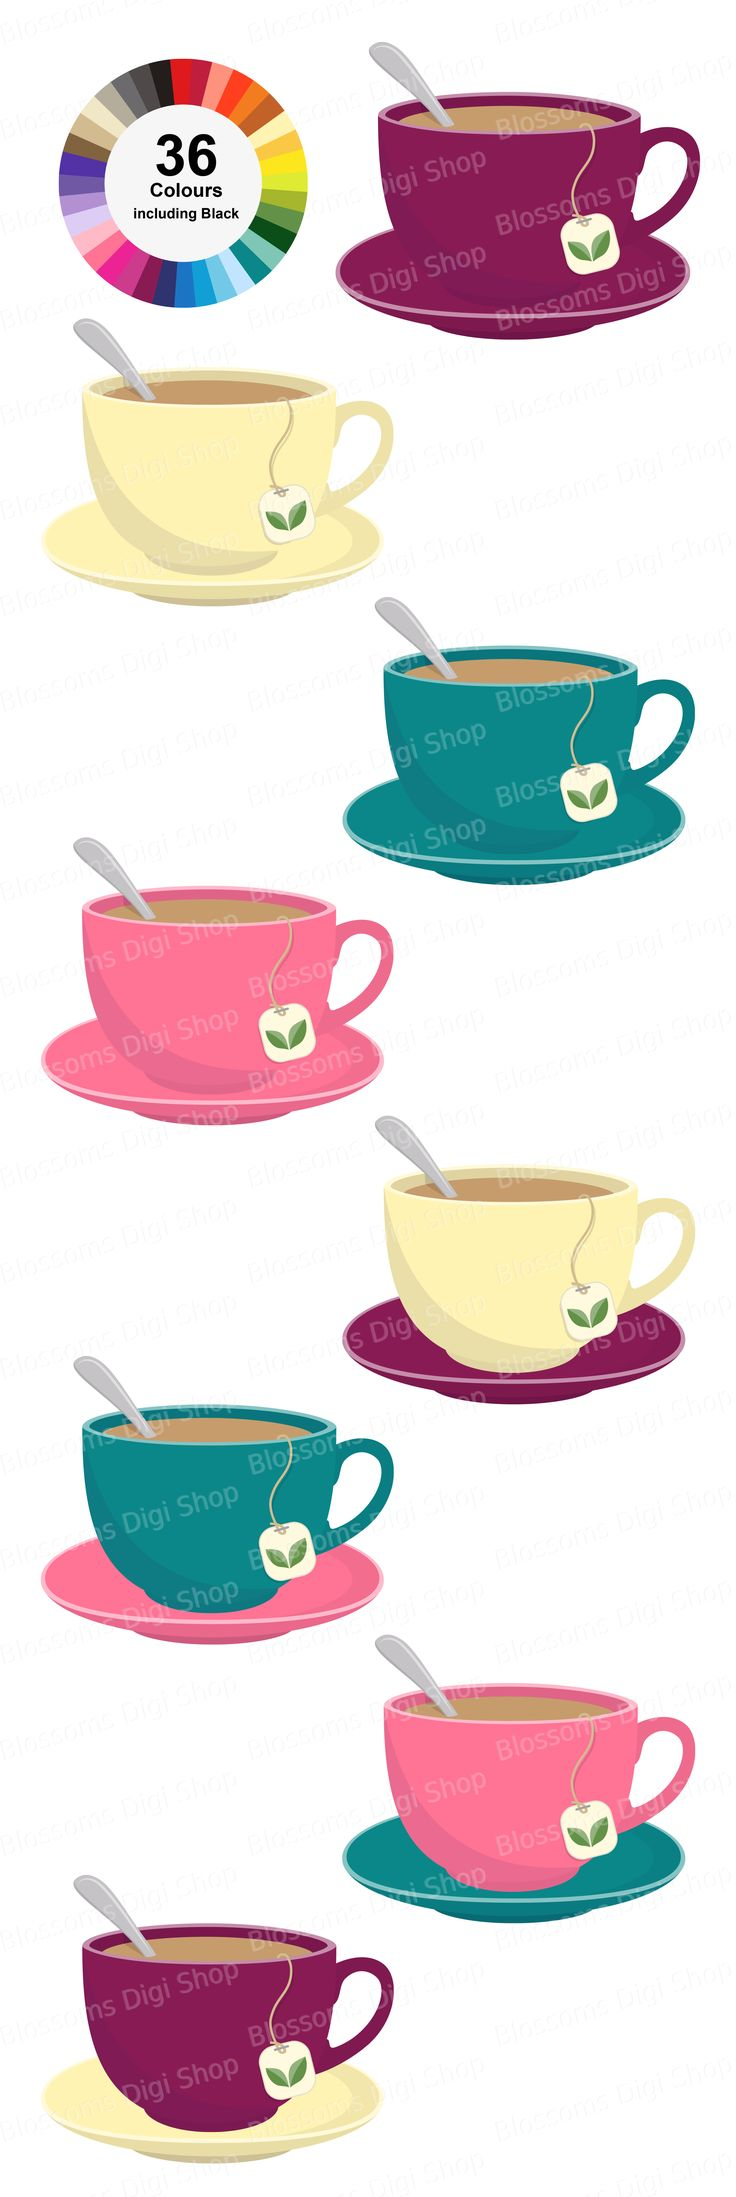 36 Tea Cups and 36 Saucers,  saved separately for mixing and matching. Available to download at Etsy for personal and commercial use.